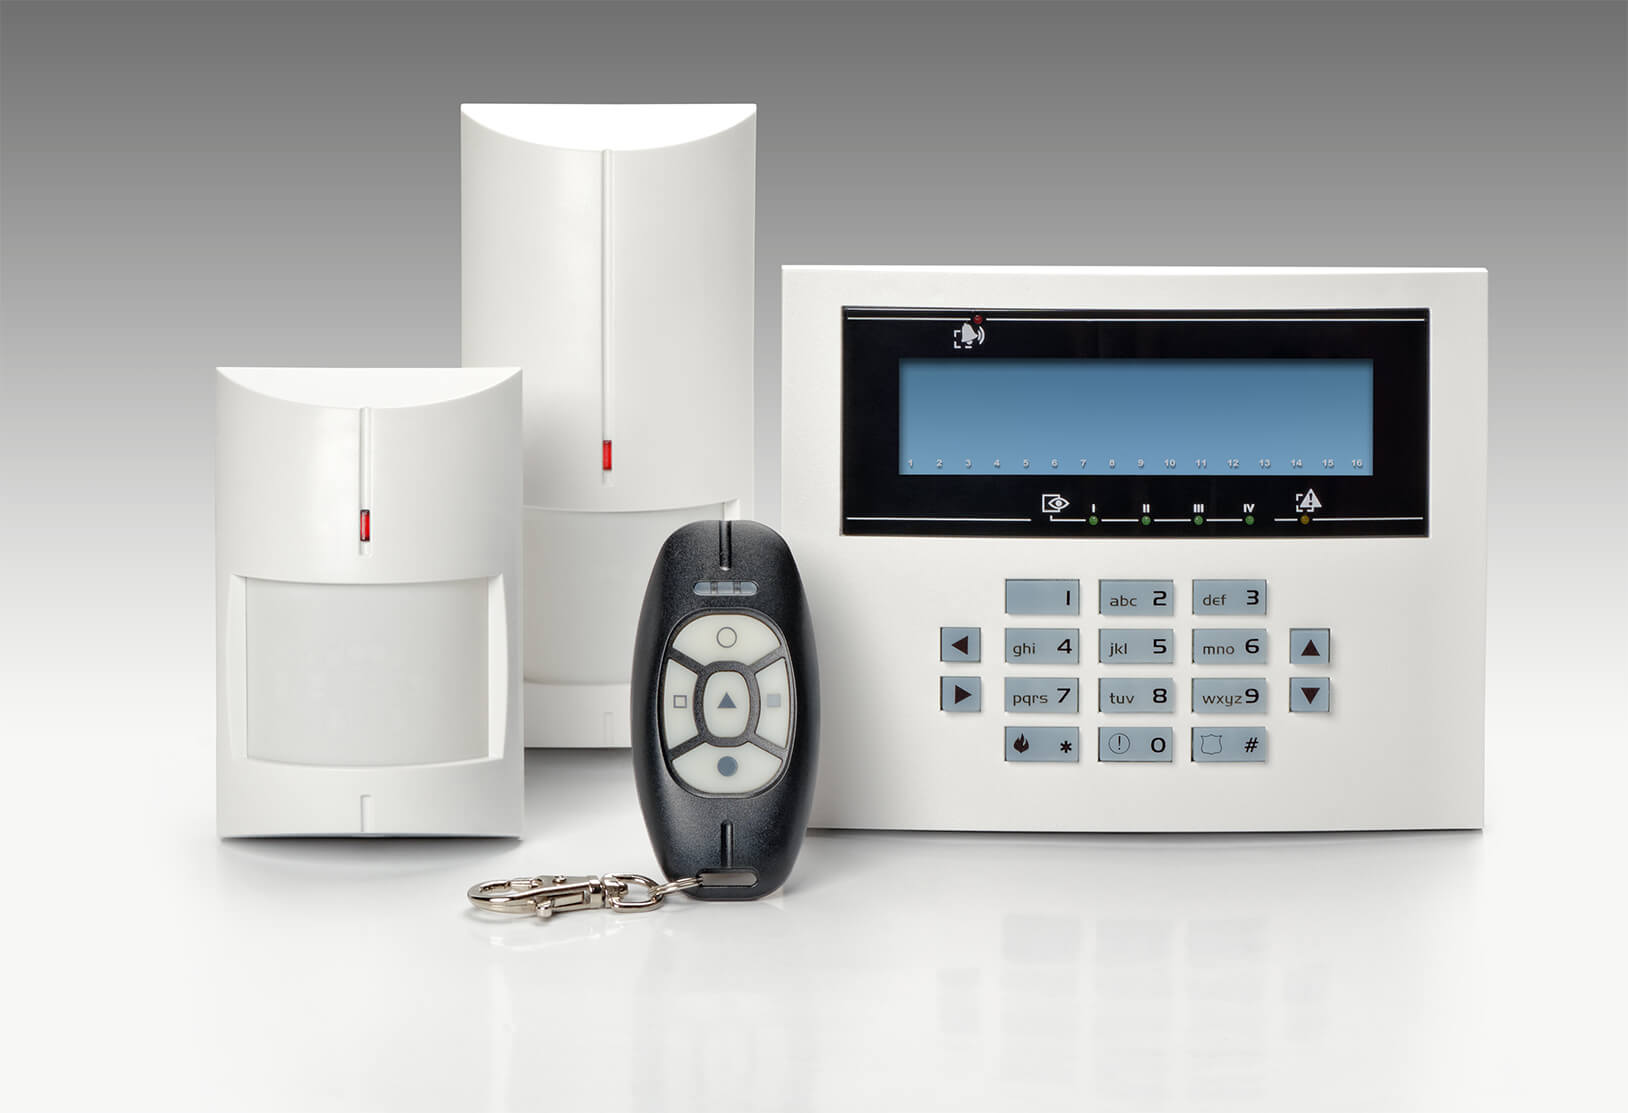 Business & Residential NACOSS Approved Burglar Alarms In Camberwell SE19 - Local Camberwell SE19 security company.Call 02078872244 - Dedicated to Safety & Security. Companies, shops and homes ..